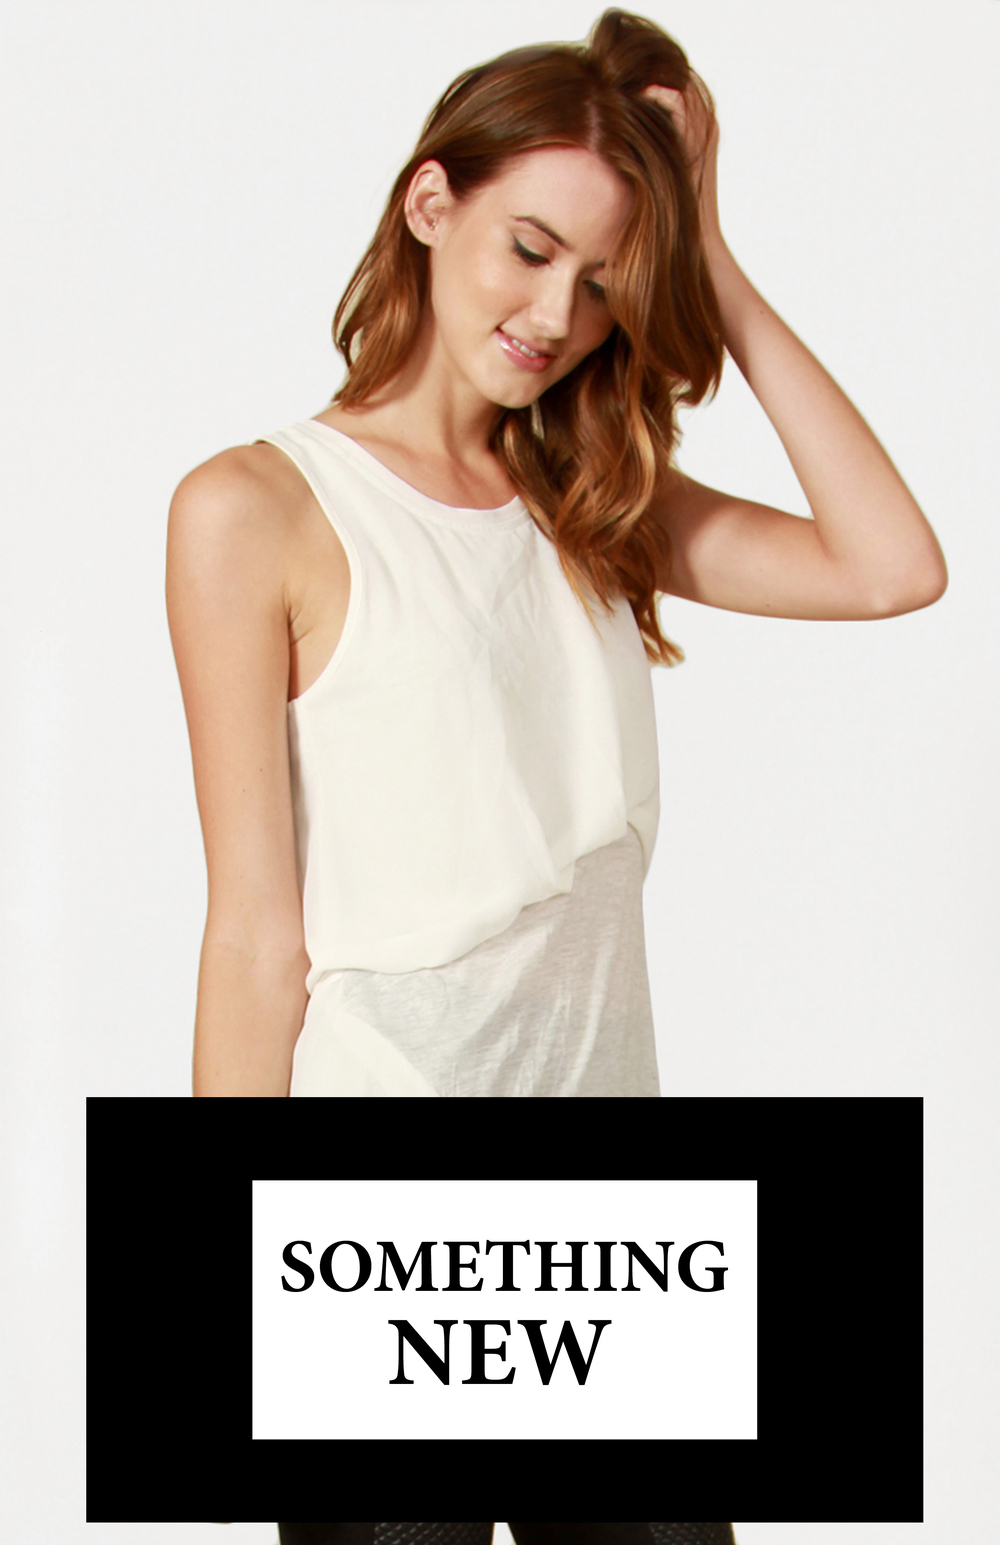 Shop the best priced, Quality Cocktail dresses, summer dresses, easter dress, tshirts, blouses, pants, rompers, skirts and more.